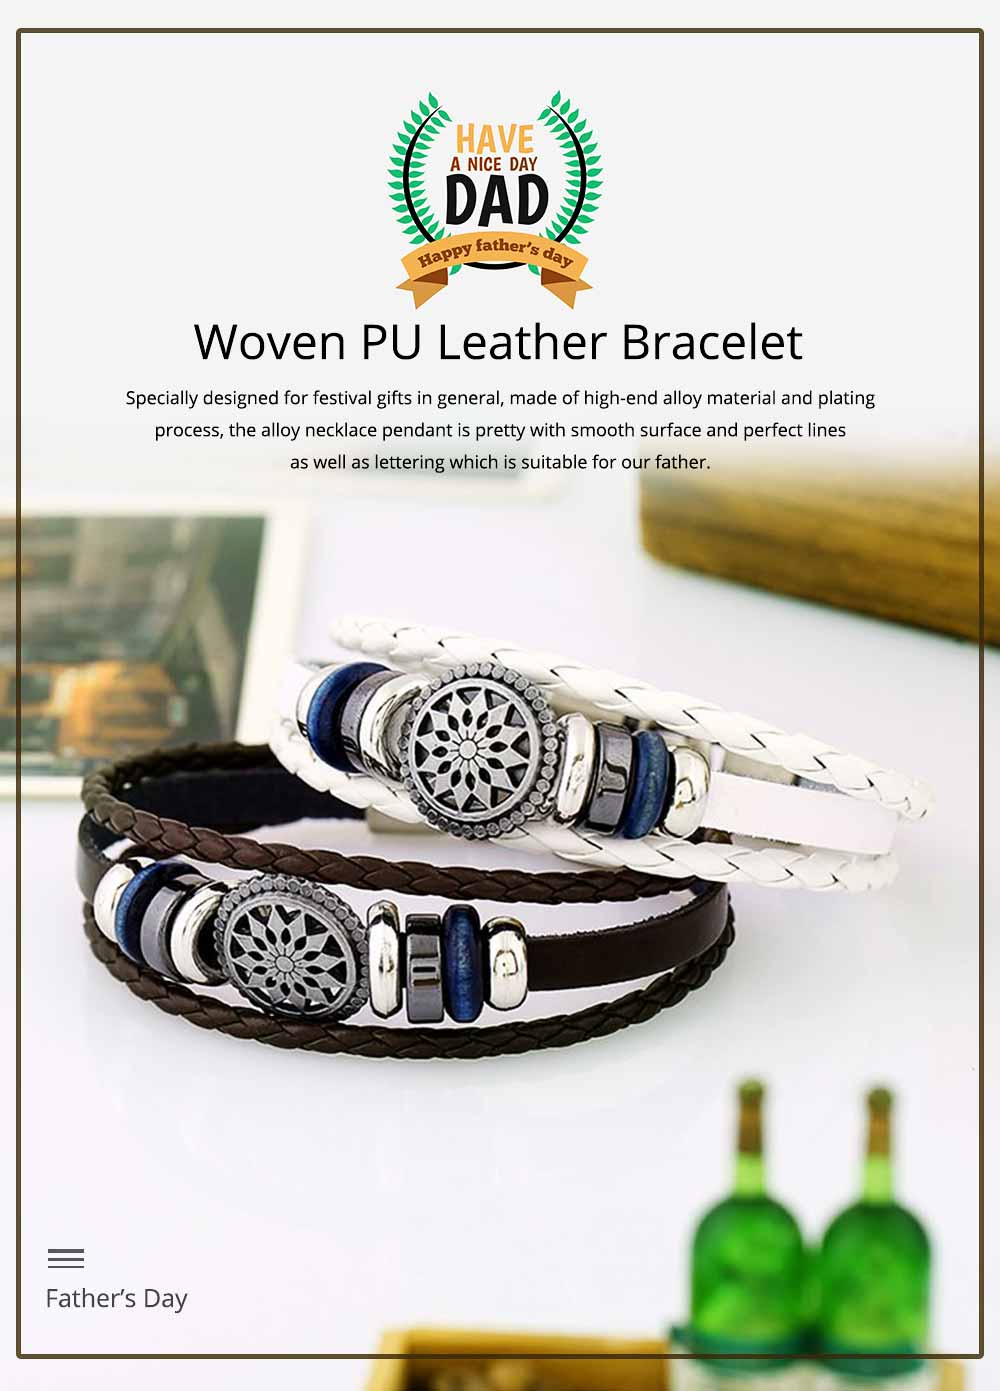 Woven PU Leather Bracelet, Men' Cowhide Hand Ornament for Father's Day Gift, Birthday Gift, Business Activity Gift 0